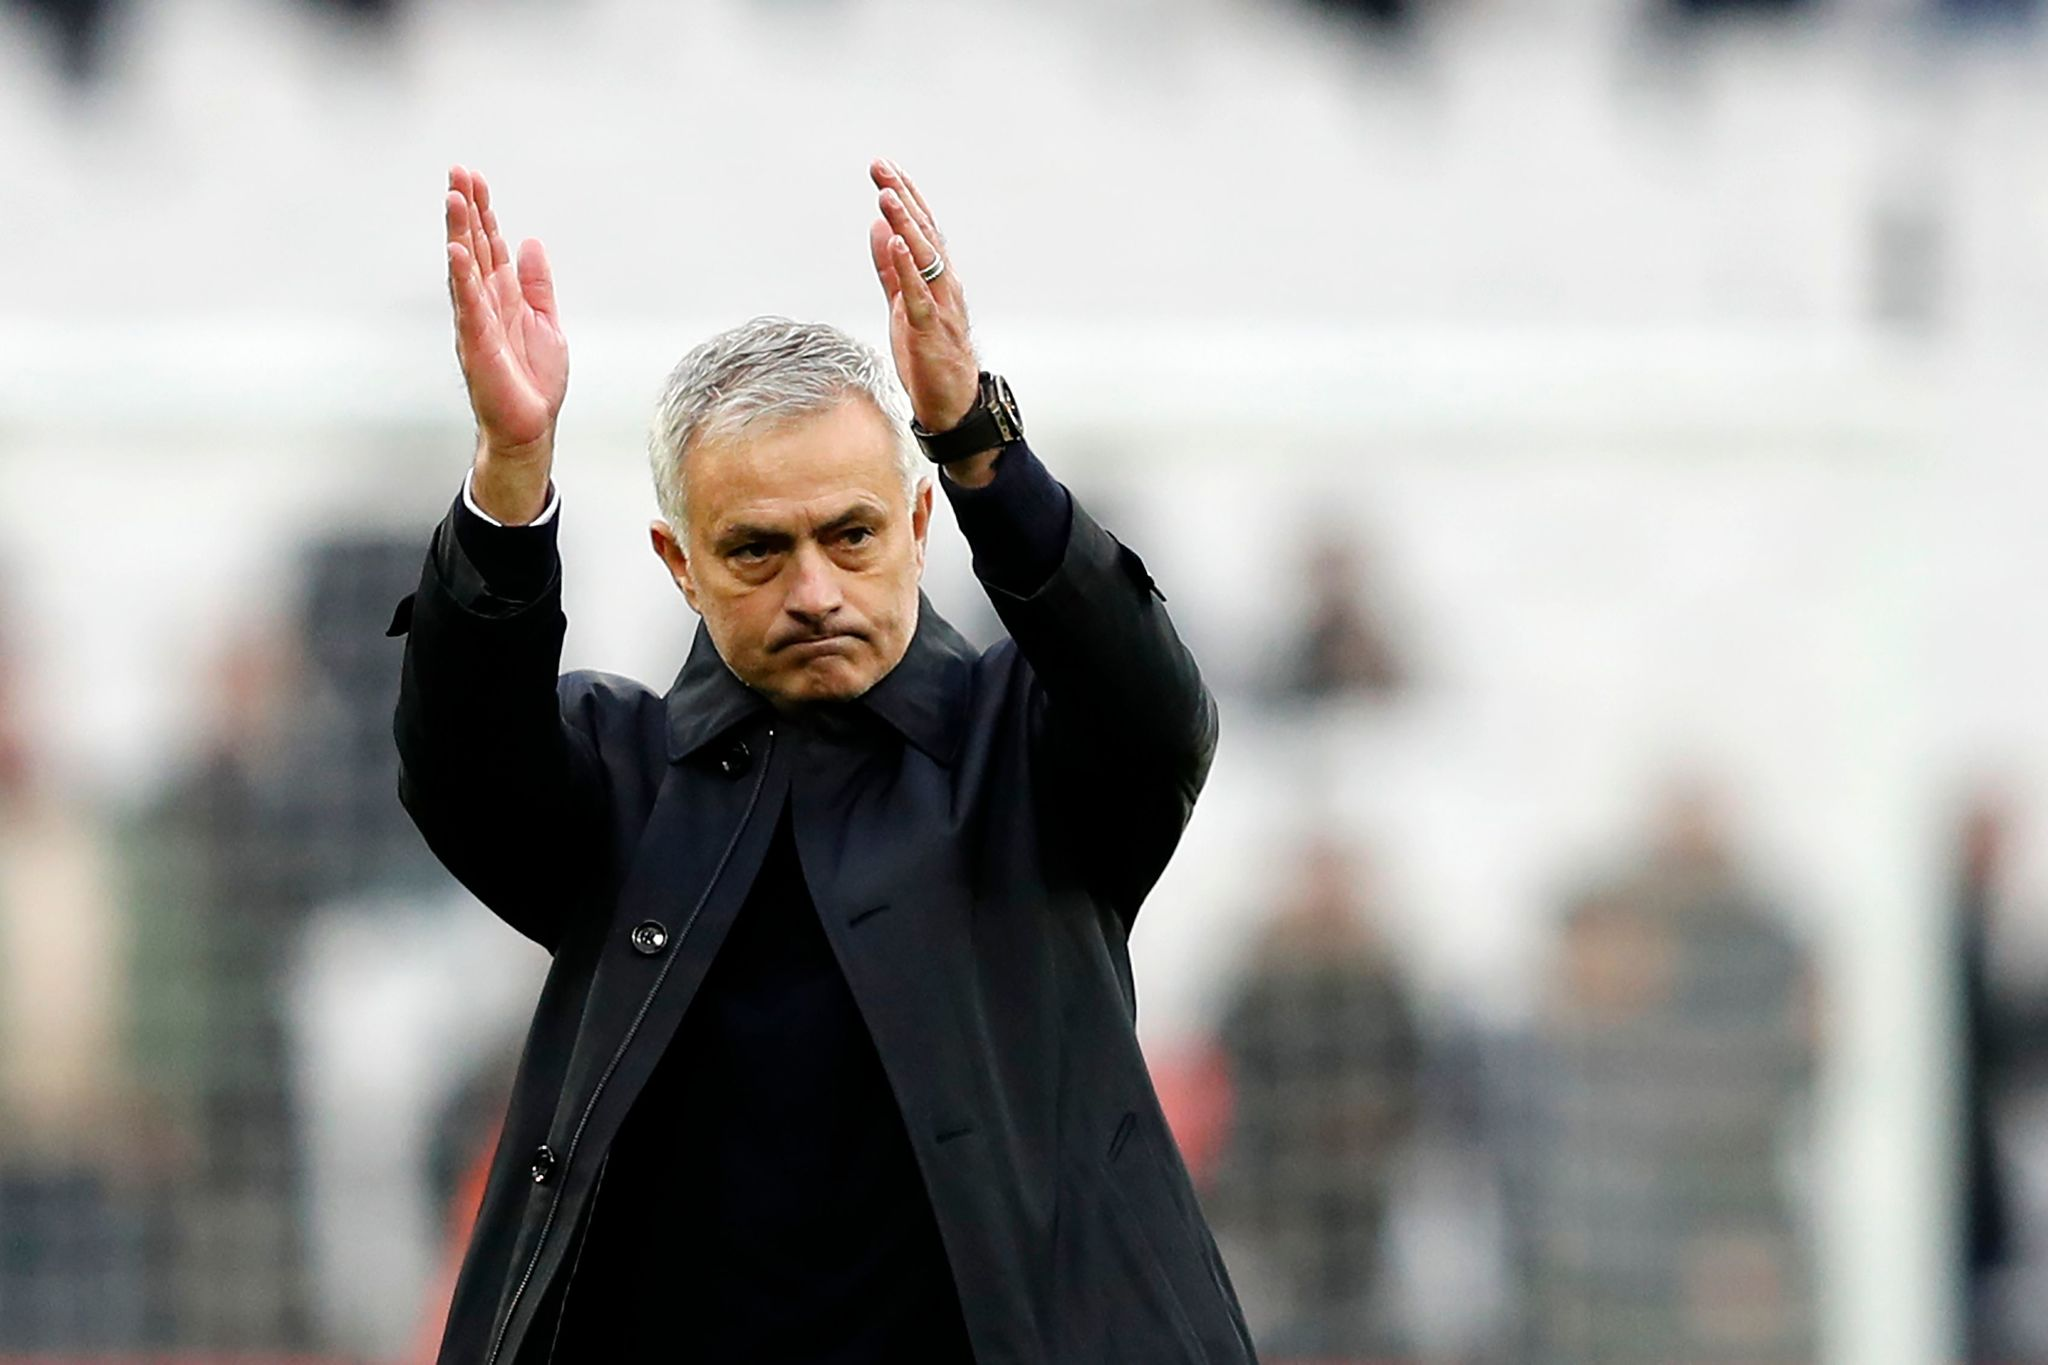 <HIT>Tottenham</HIT> Hotspurs Portuguese head coach Jose Mourinho reacts at the final whistle during the English Premier League football match between West Ham United and <HIT>Tottenham</HIT> Hotspur at The London Stadium, in east London on November 23, 2019. - <HIT>Tottenham</HIT> Hotspur beat West Ham United 3-2. (Photo by Adrian DENNIS / AFP) / RESTRICTED TO EDITORIAL USE. No use with unauthorized audio, video, data, fixture lists, club/league logos or live services. Online in-match use limited to 120 images. An additional 40 images may be used in extra time. No video emulation. Social media in-match use limited to 120 images. An additional 40 images may be used in extra time. No use in betting publications, games or single club/league/player publications. /